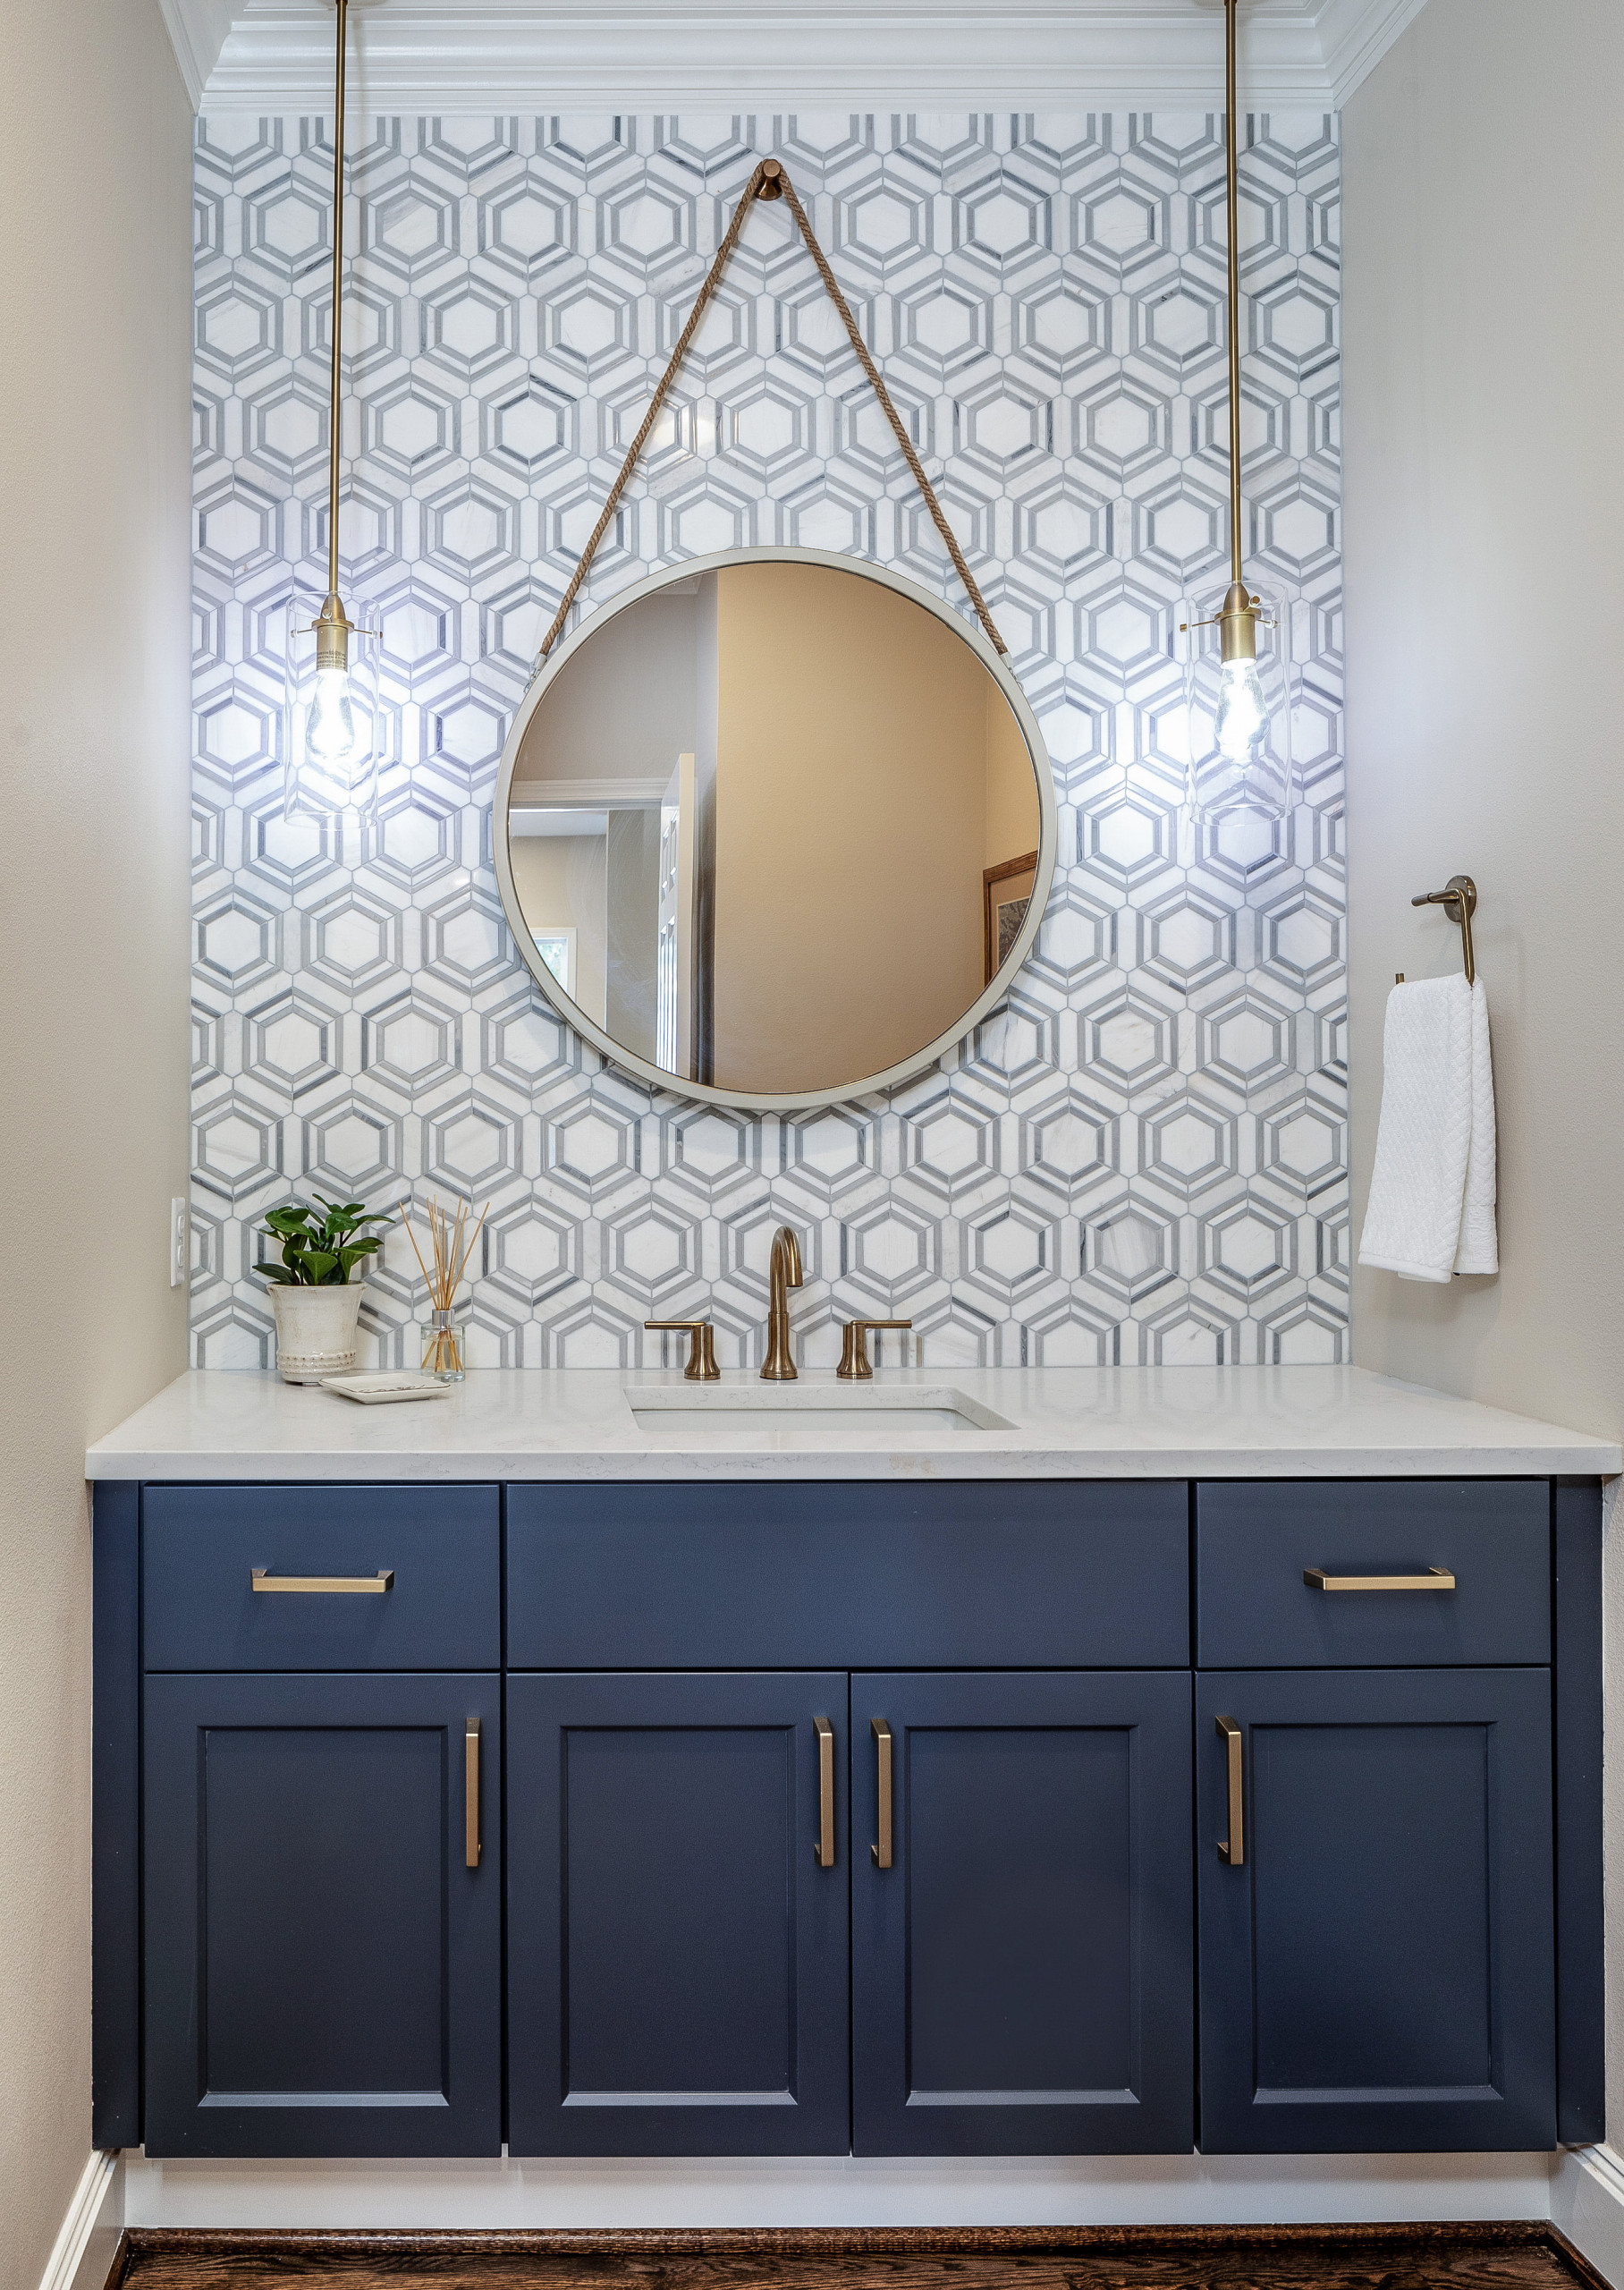 75 Beautiful Powder Room Pictures Ideas February 2021 Houzz